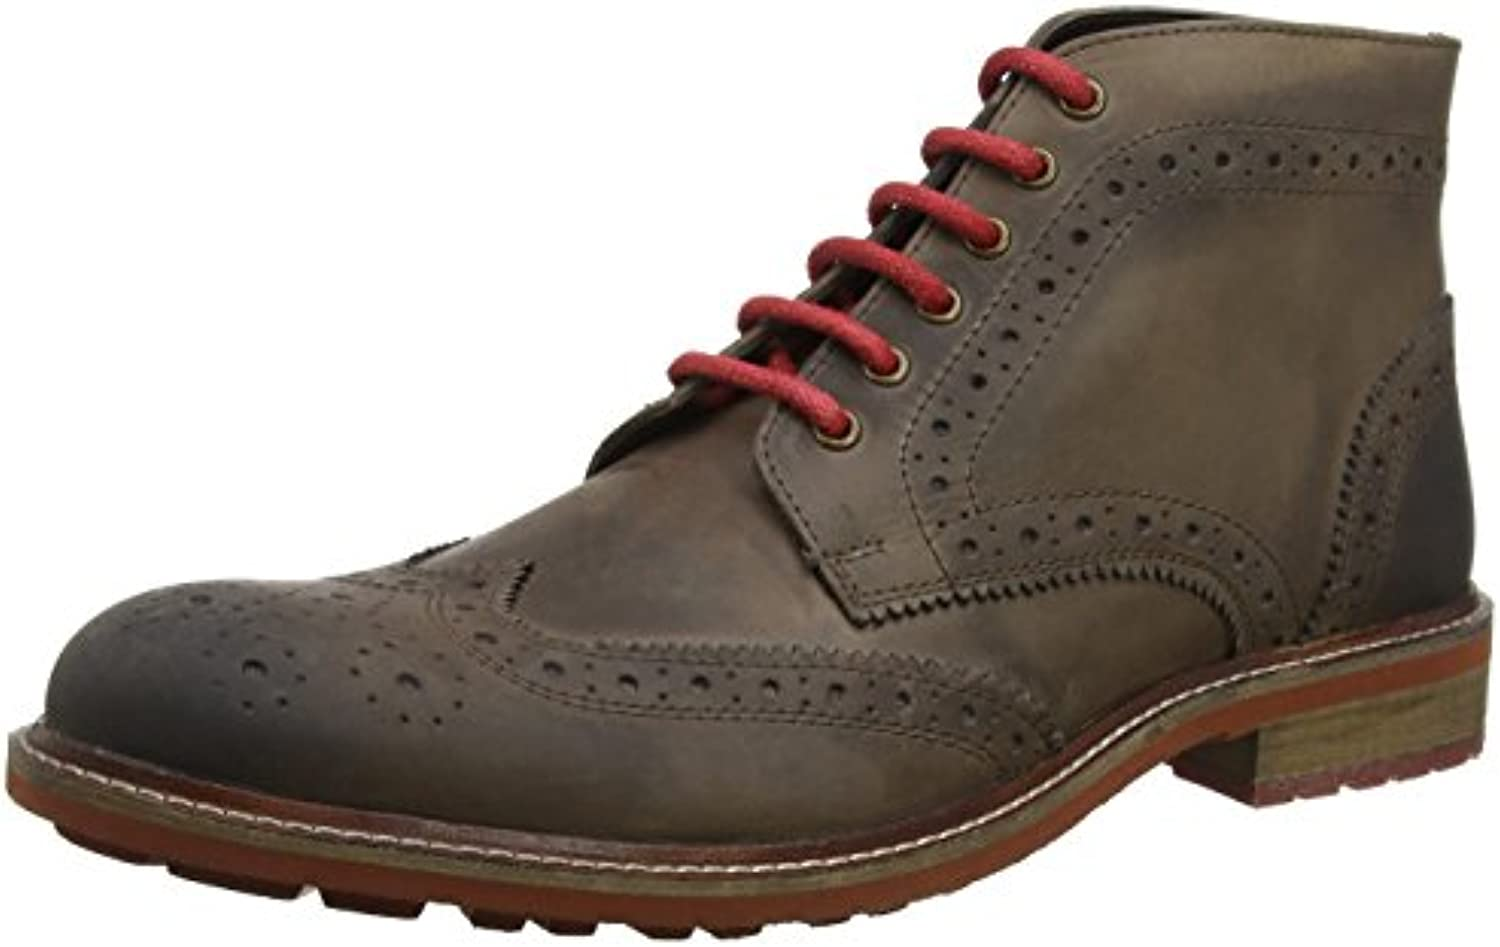 Joe Browns Herren Perfection Waxed Leather Boots StiefelettenJoe Browns Perfection Leather Stiefeletten